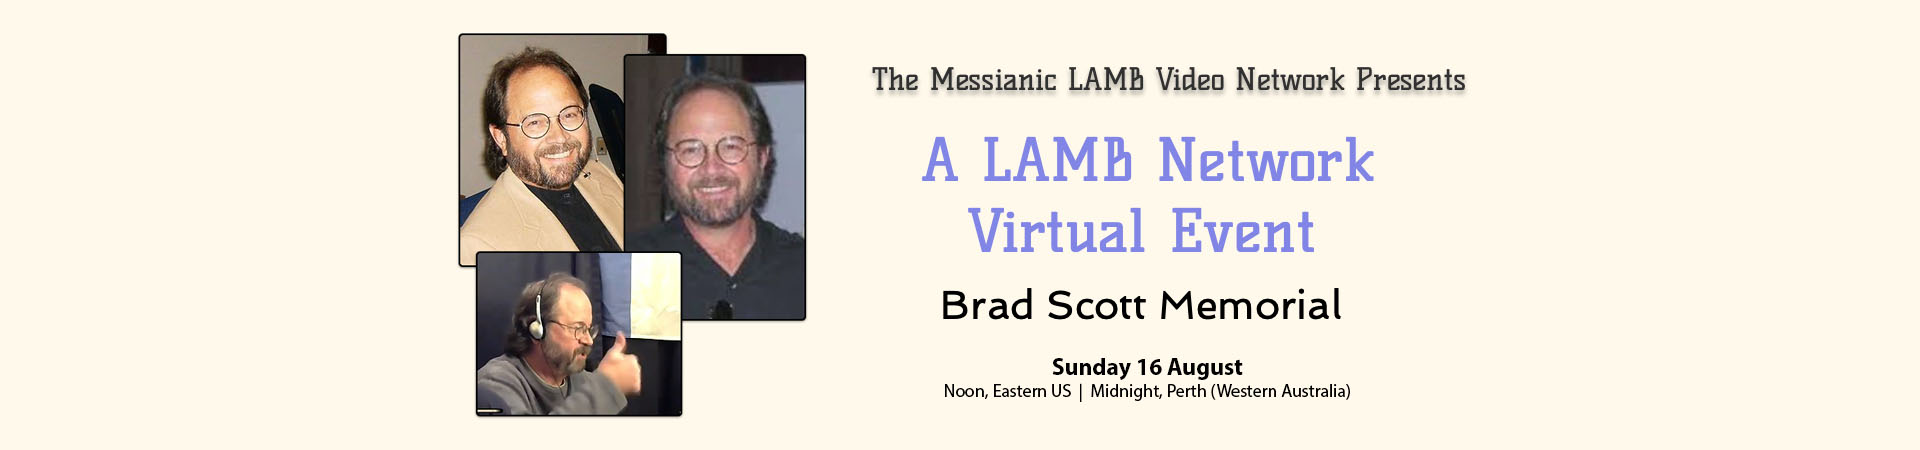 messianic-lamb-event-banner